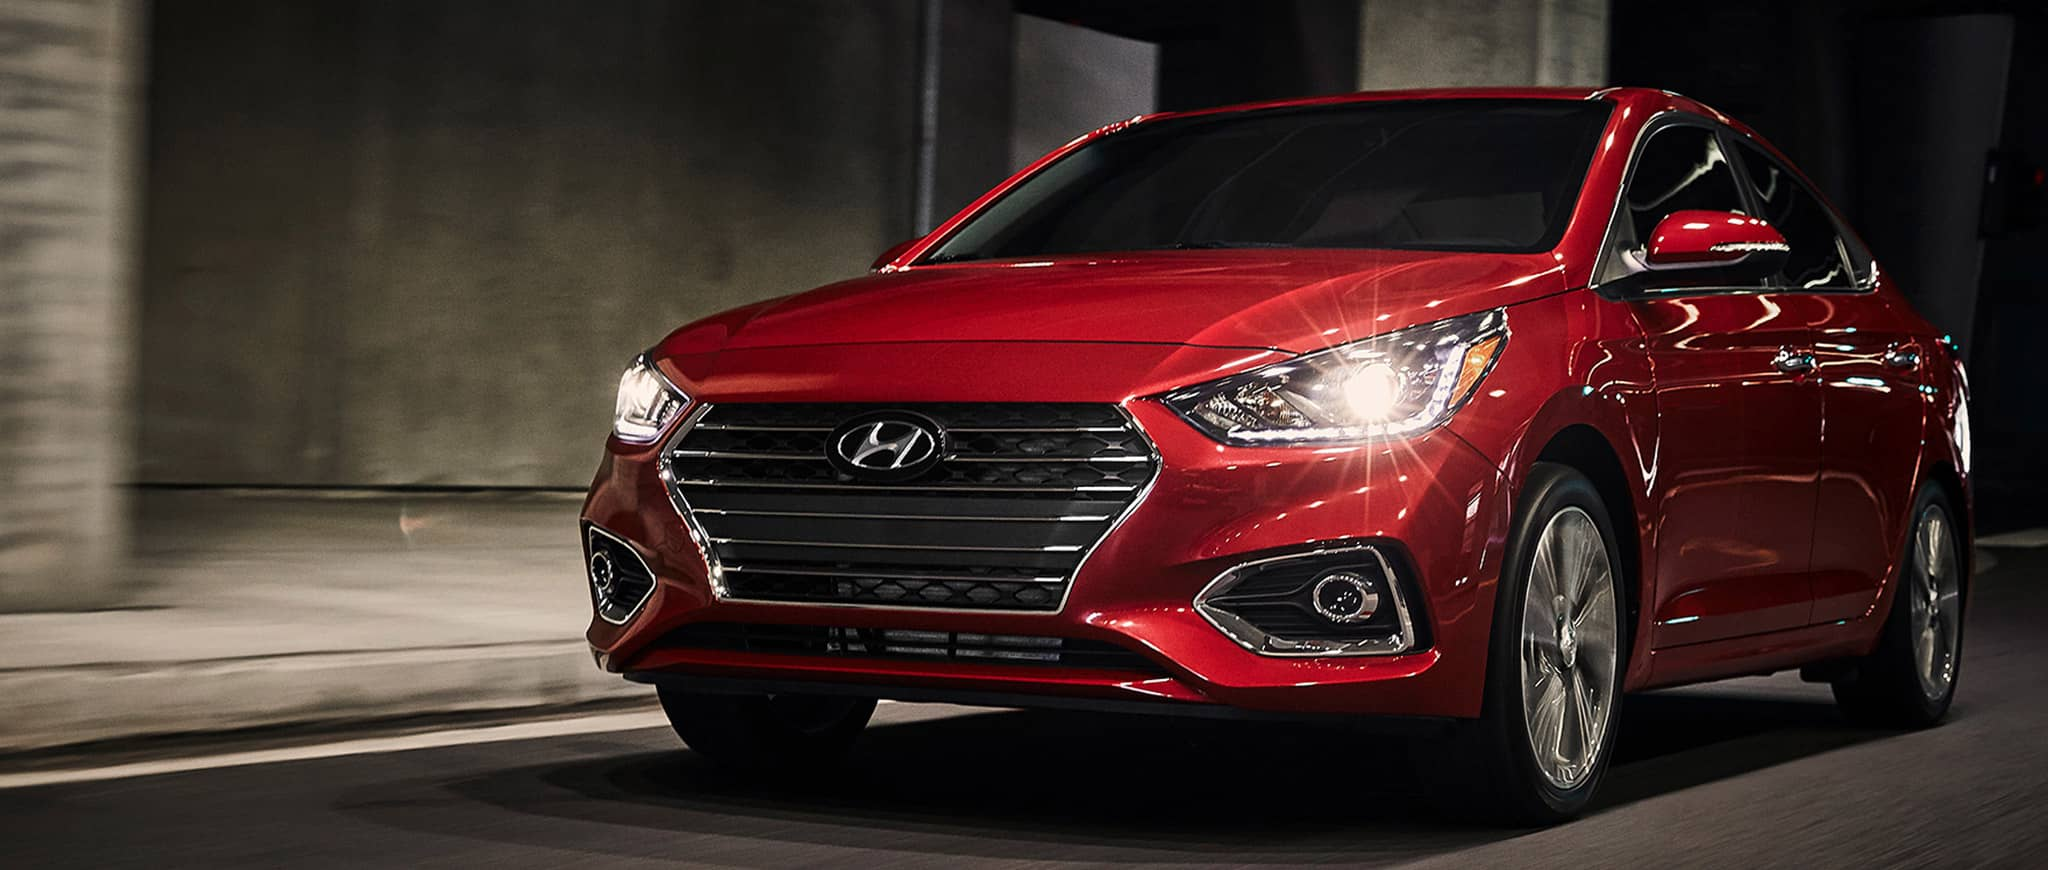 2018 Hyundai Accent Gallery 3